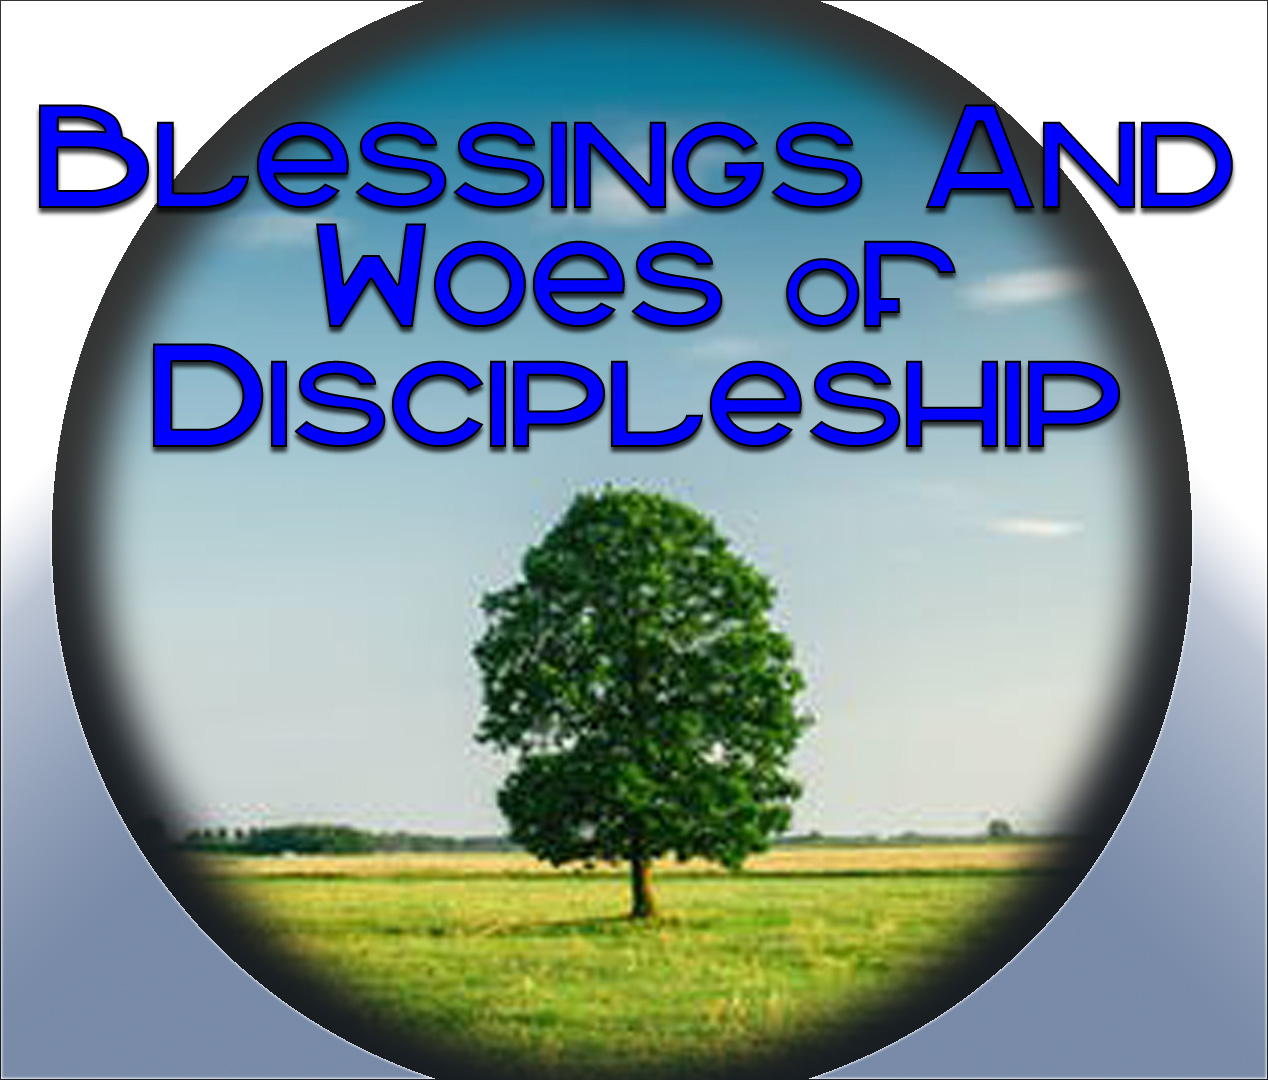 BLESSINGS AND WOES OF DISCIPLESHIP (2-17-19)